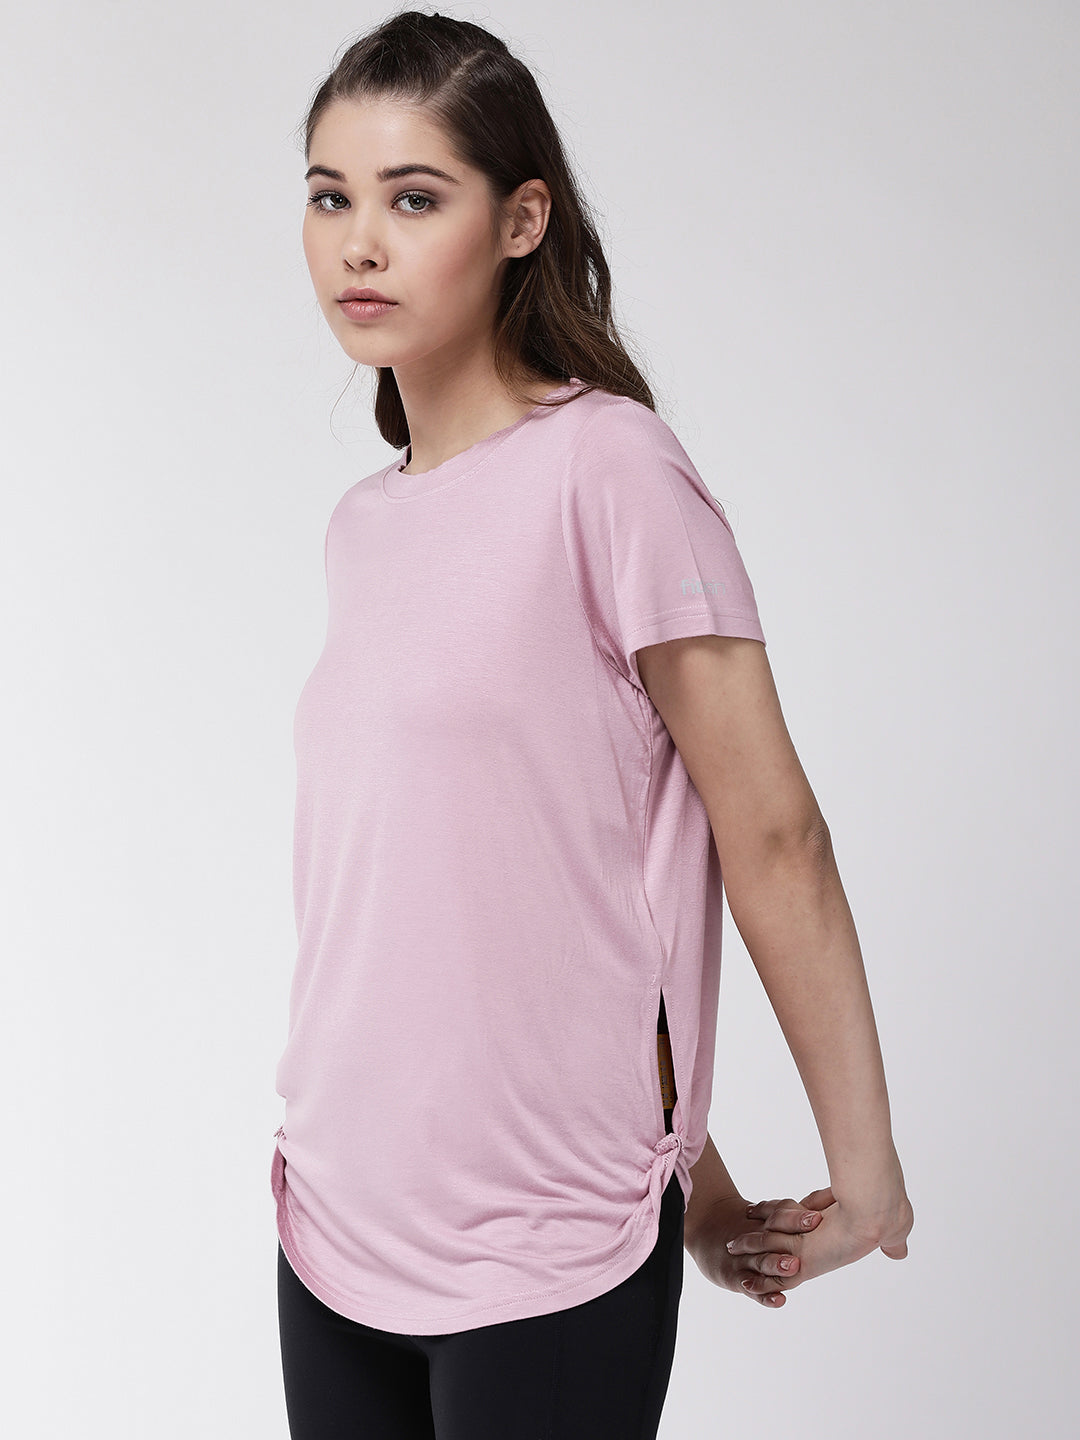 Fitkin women side twist relax fit tshirt